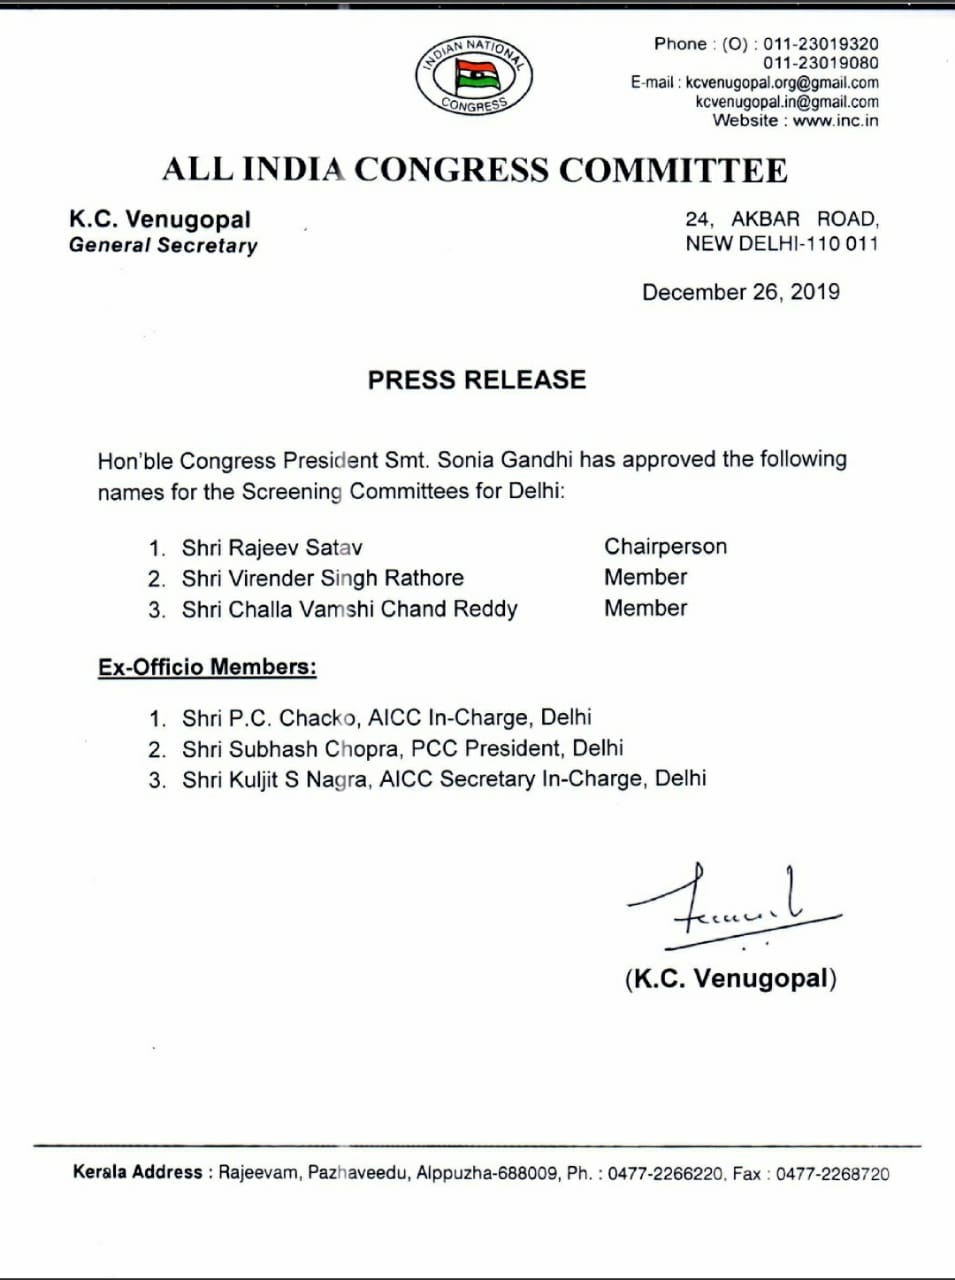 Congress appoints screening committee for Delhi Assembly Elections